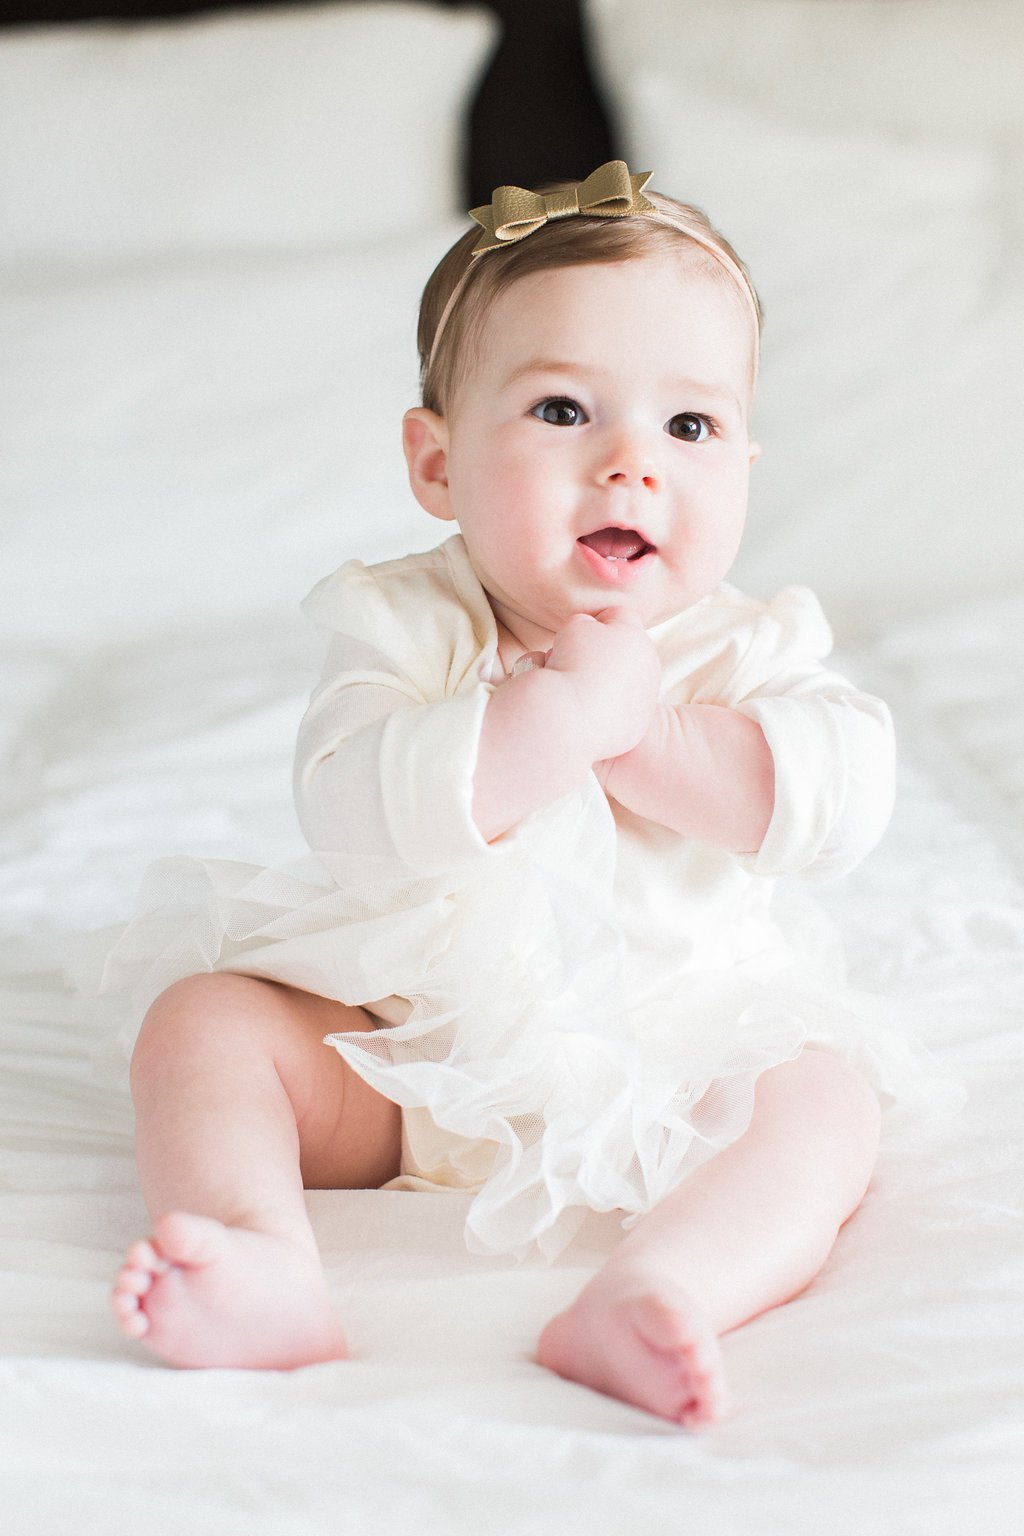 Baby clapping her hands and posing in a white dress with gold bow in her hair